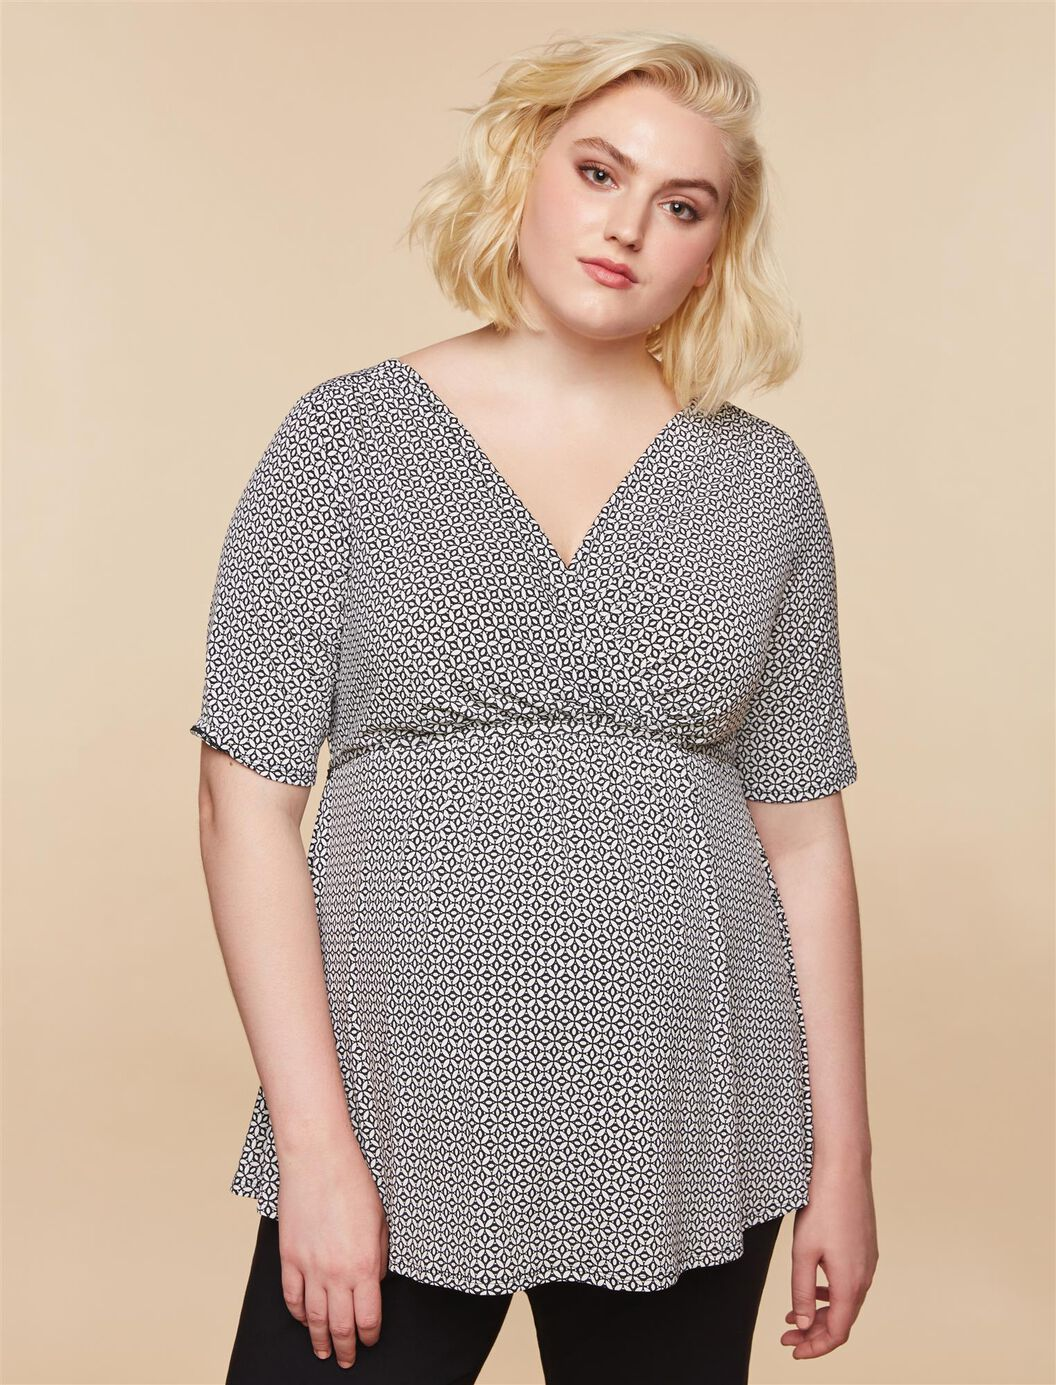 Plus Size Maternity Top at Motherhood Maternity in Victor, NY | Tuggl